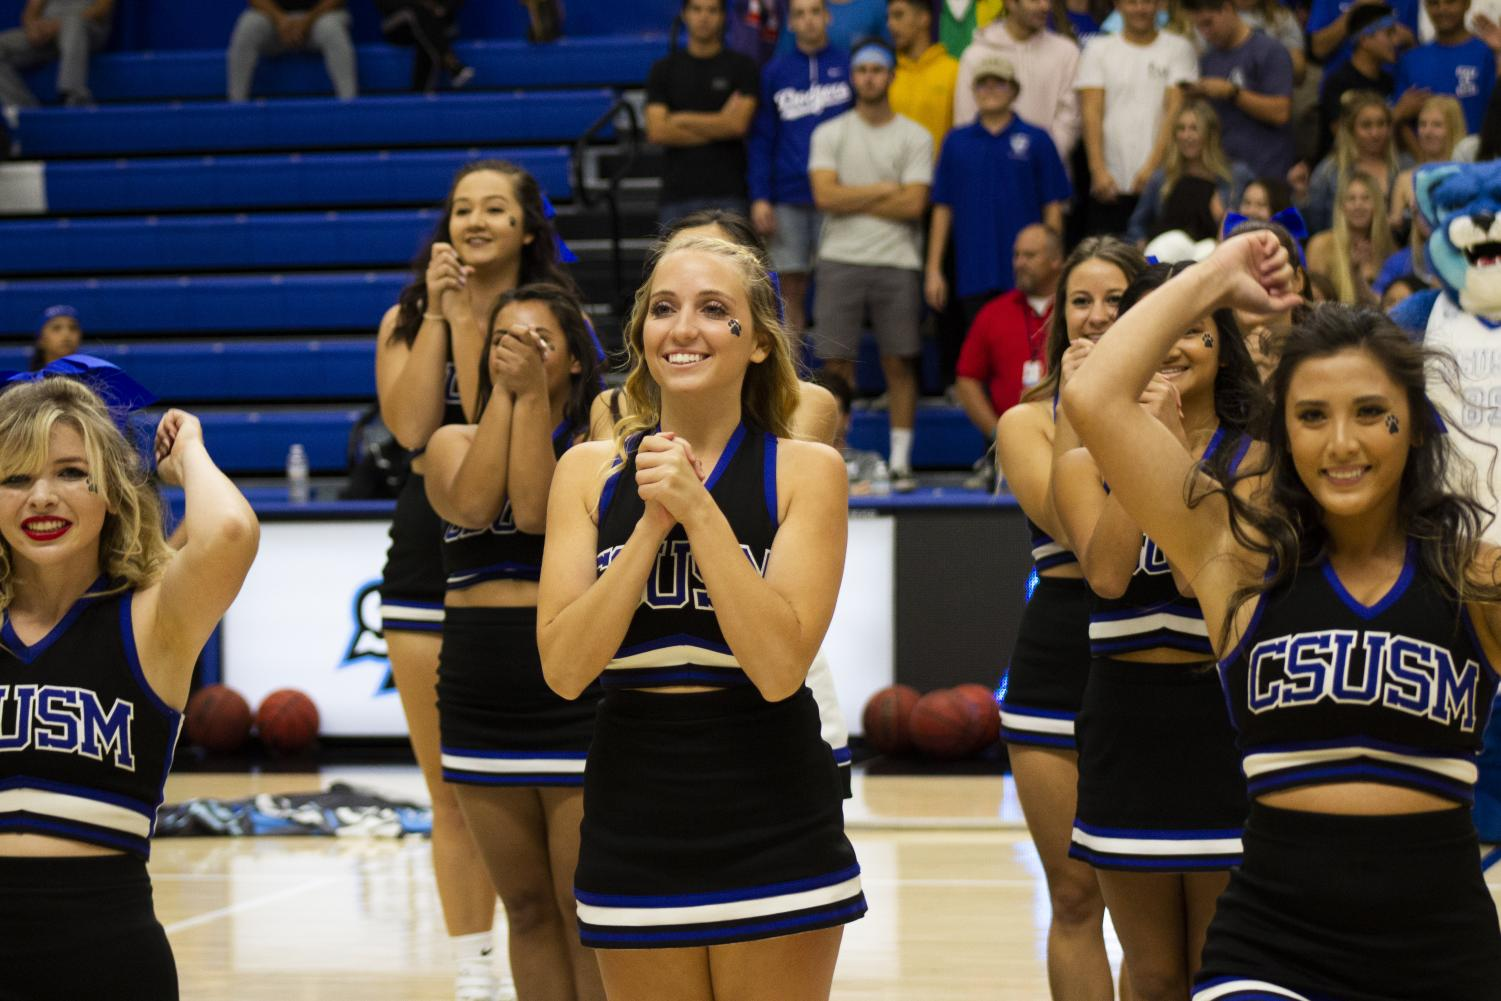 CSUSM's dance team perform at the cougar madness event on Oct.18, 2018.